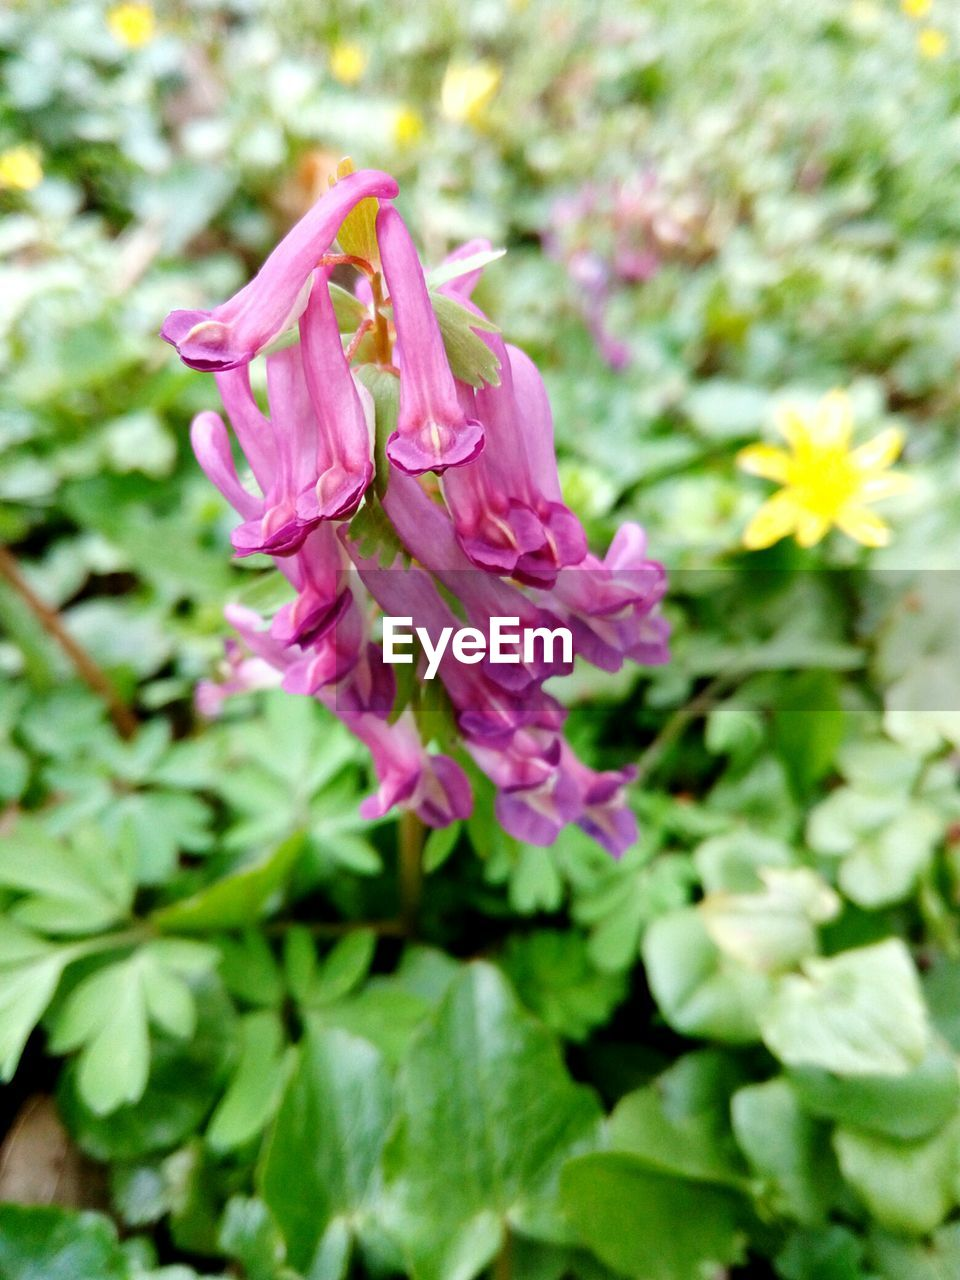 flowering plant, flower, freshness, pink color, plant, beauty in nature, fragility, vulnerability, growth, close-up, petal, inflorescence, flower head, nature, no people, day, focus on foreground, selective focus, plant part, leaf, outdoors, springtime, spring